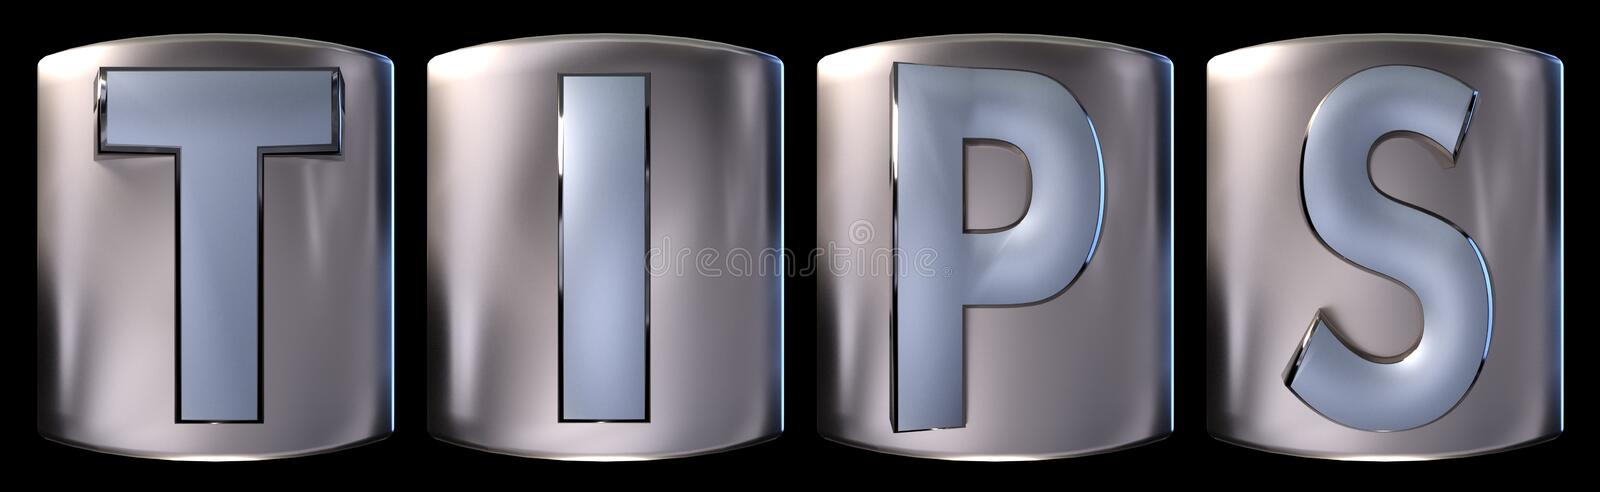 Metallic tips word. Metallic blue silver tips word realistic 3d rendered on black background royalty free illustration